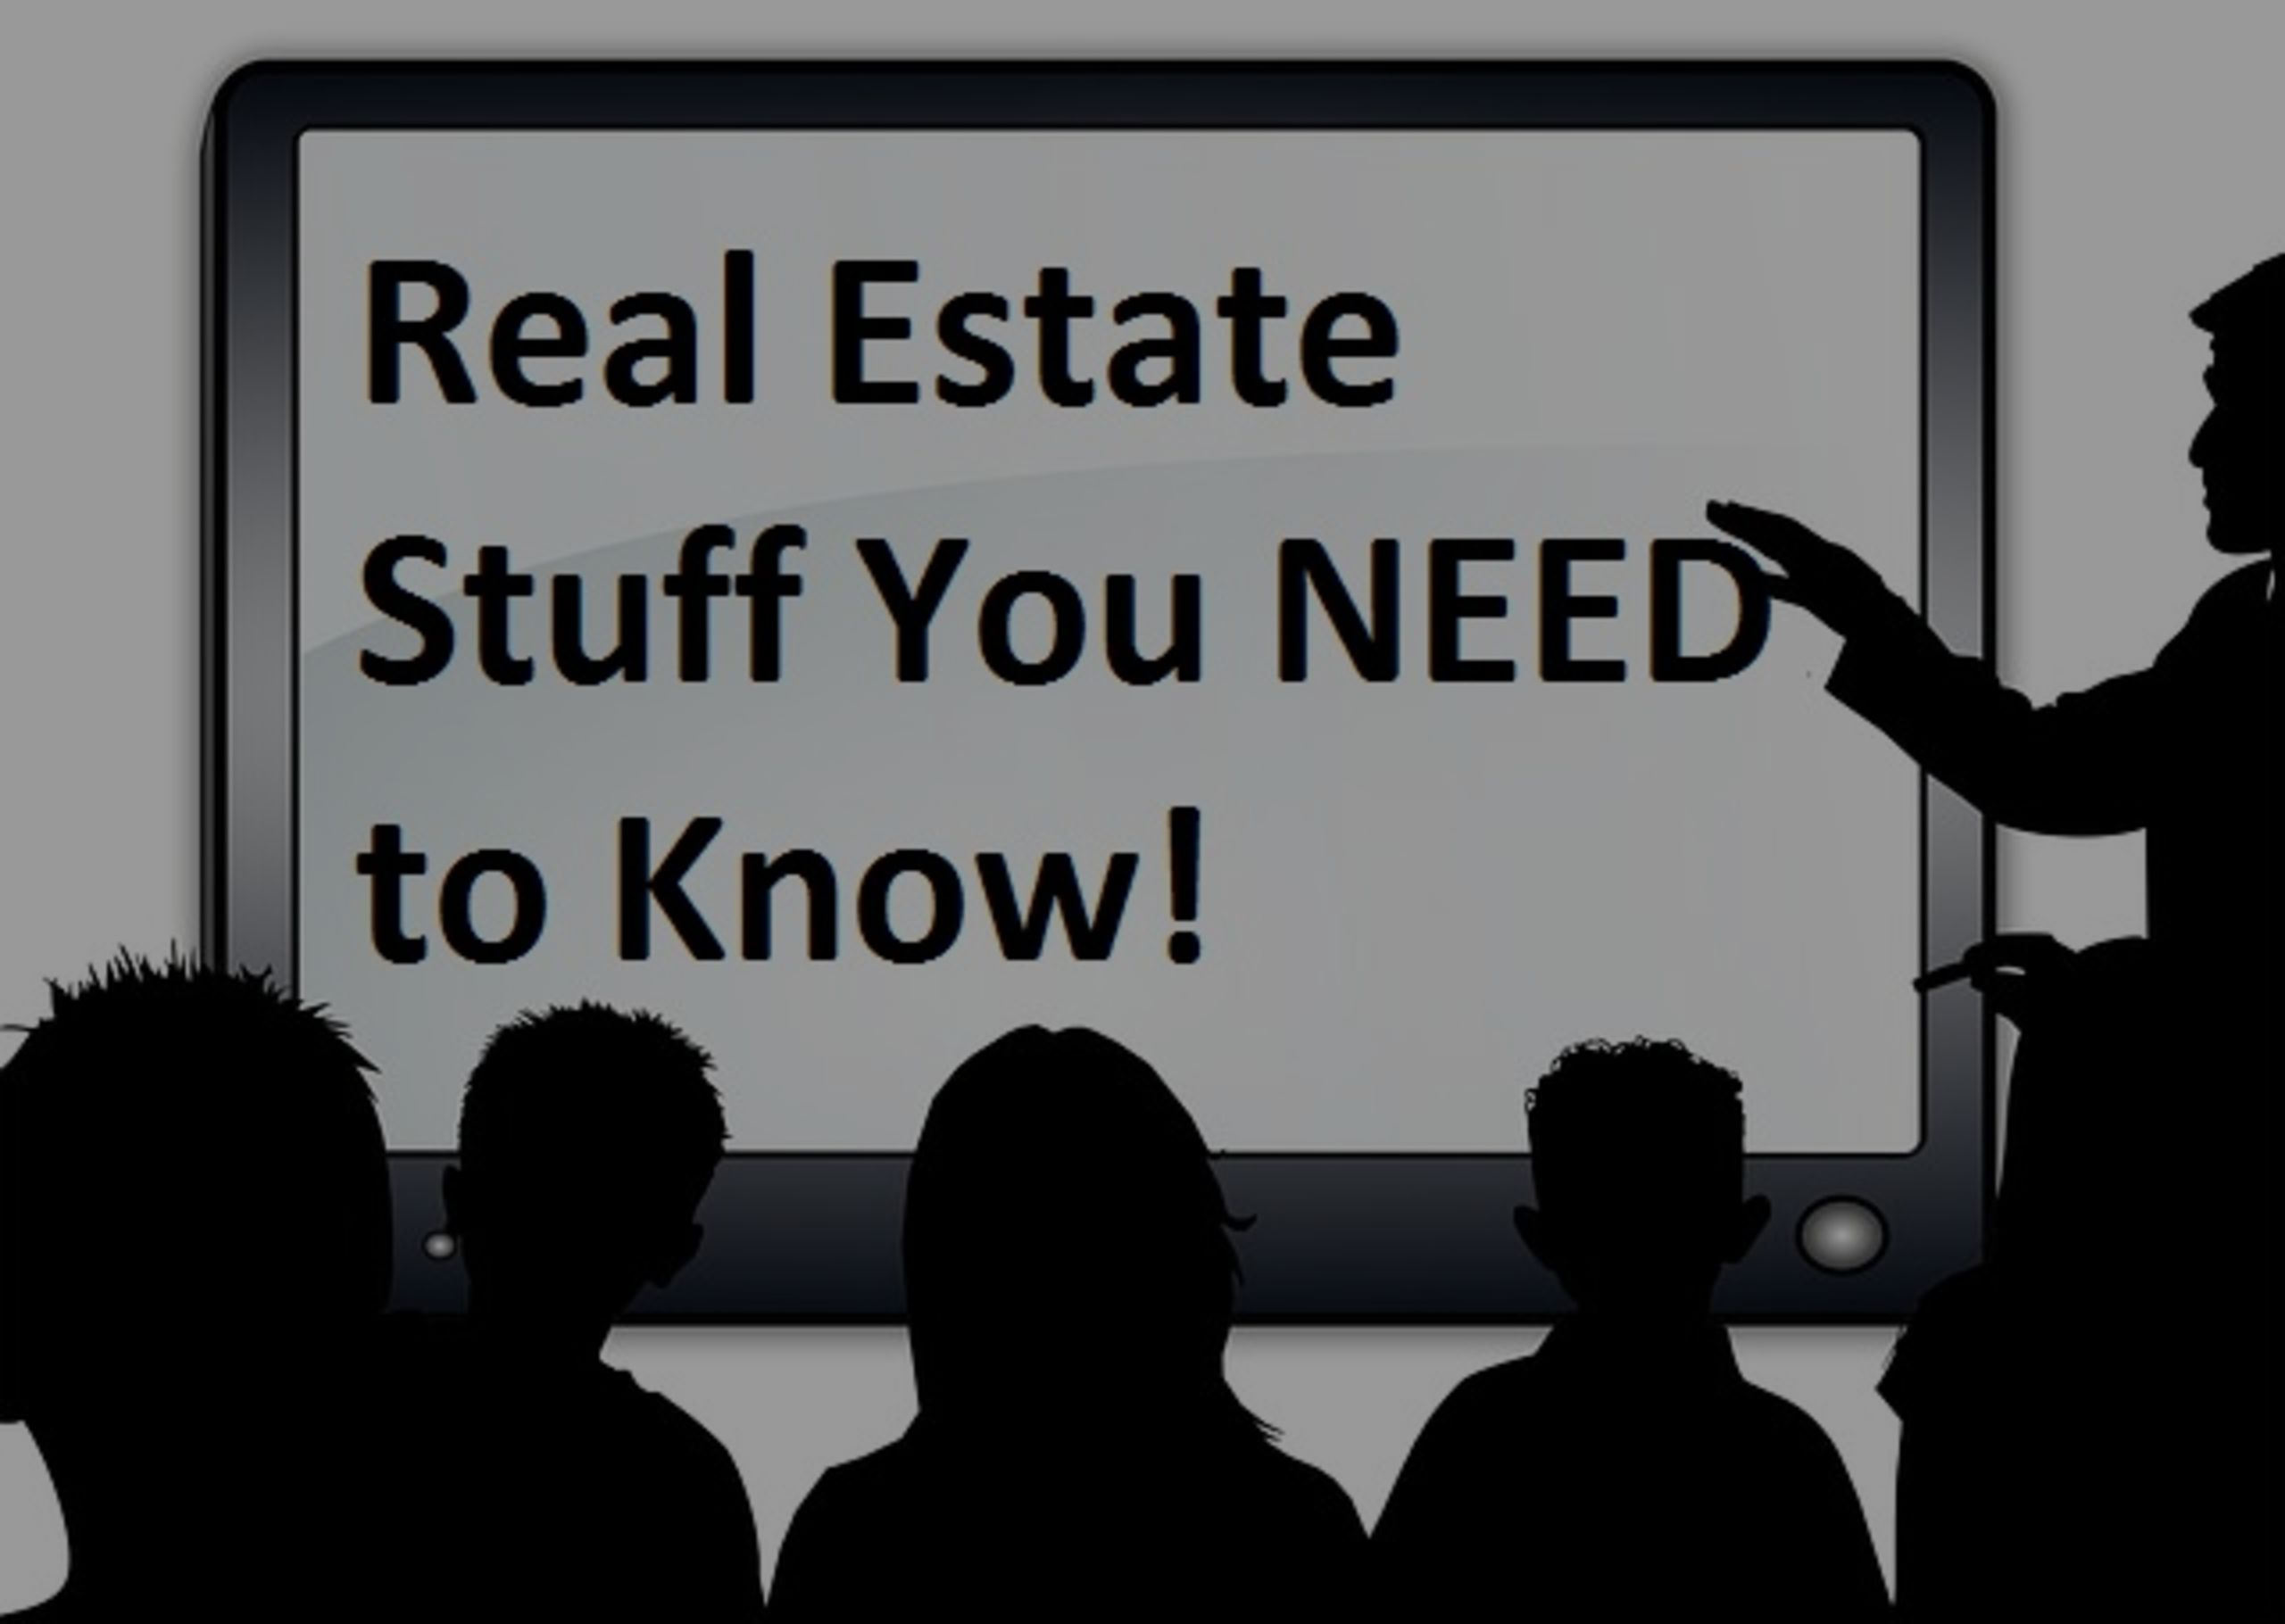 Popular Posts on My Twin Cities Real Estate Blog